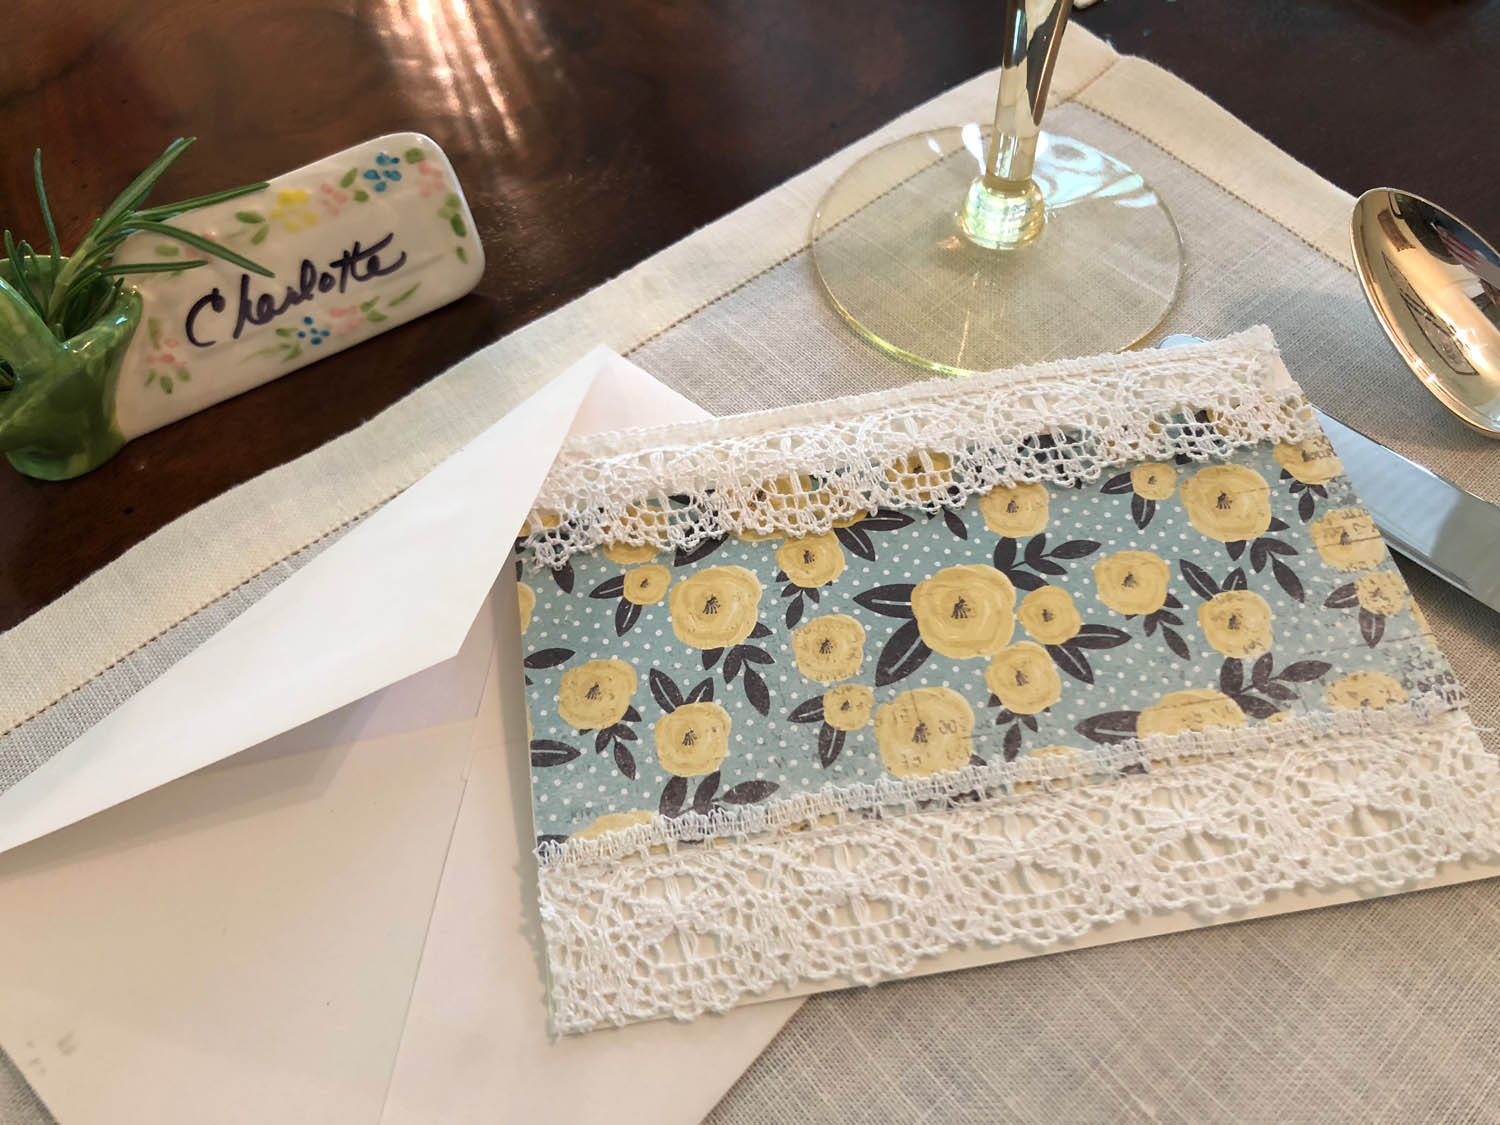 Handmade card embellished with vintage lace and fabric